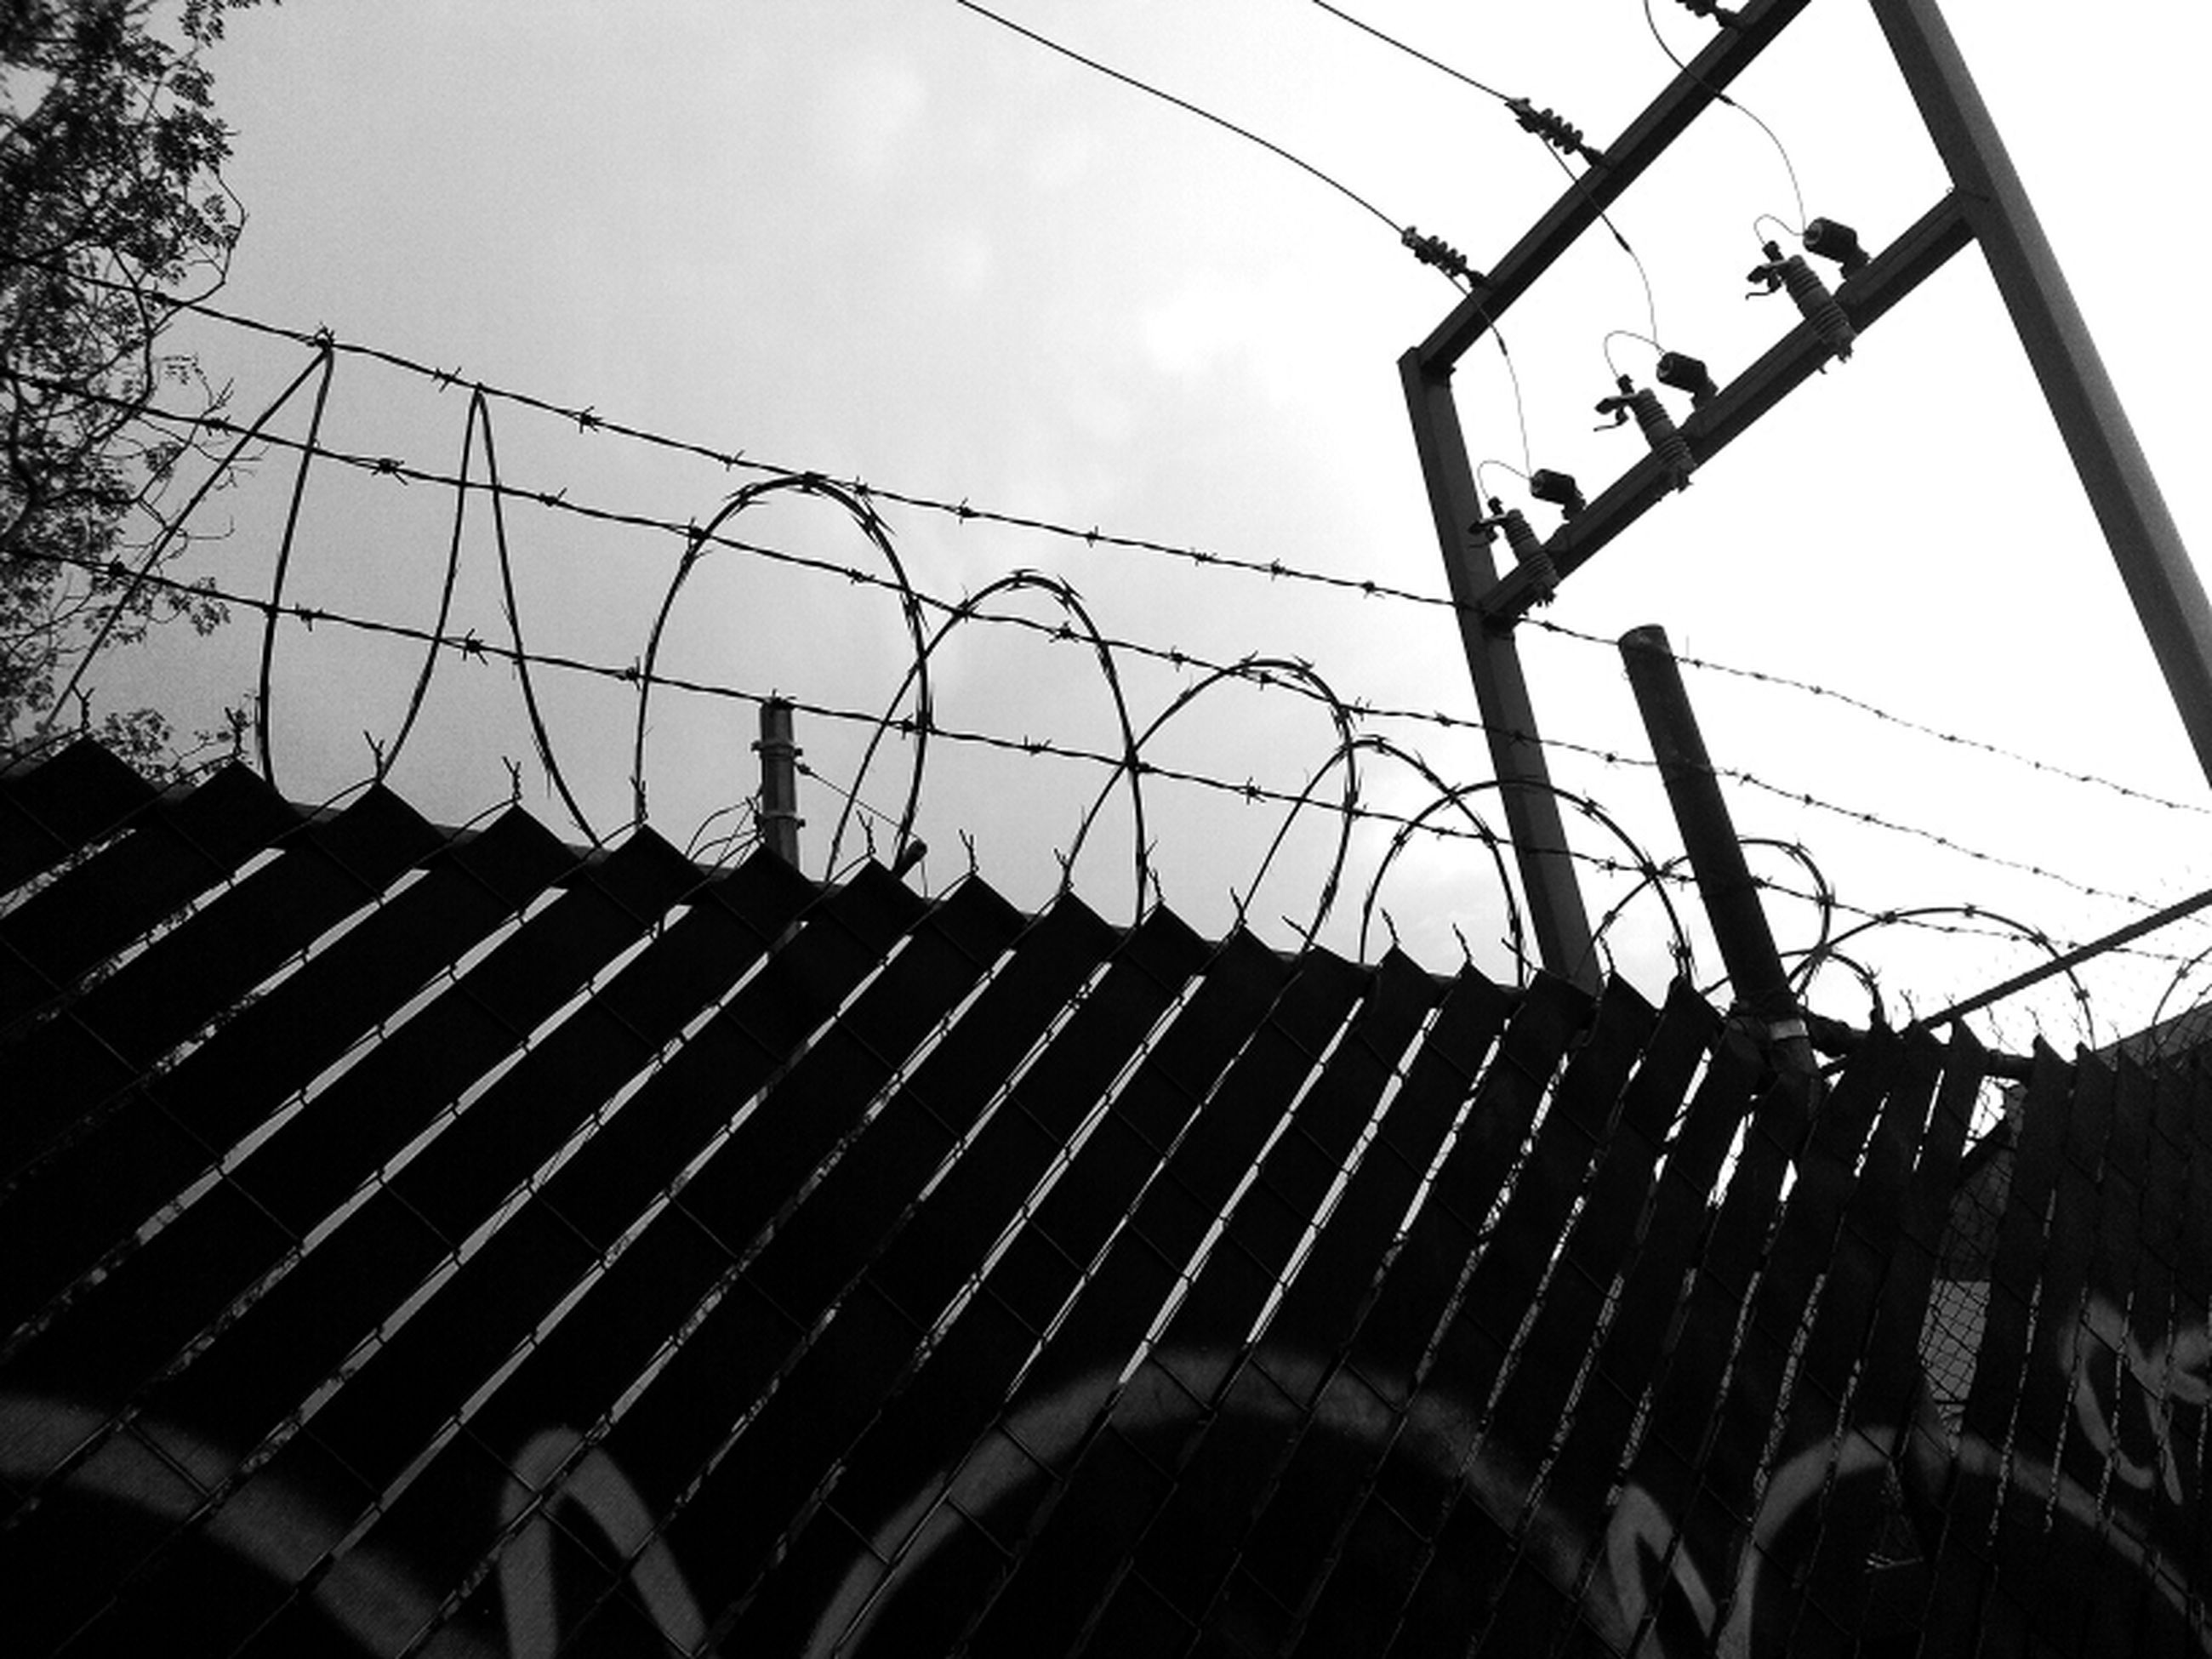 low angle view, sky, silhouette, built structure, metal, architecture, building exterior, fence, metallic, chainlink fence, outdoors, no people, clear sky, day, cloud - sky, cloud, protection, dusk, safety, construction site